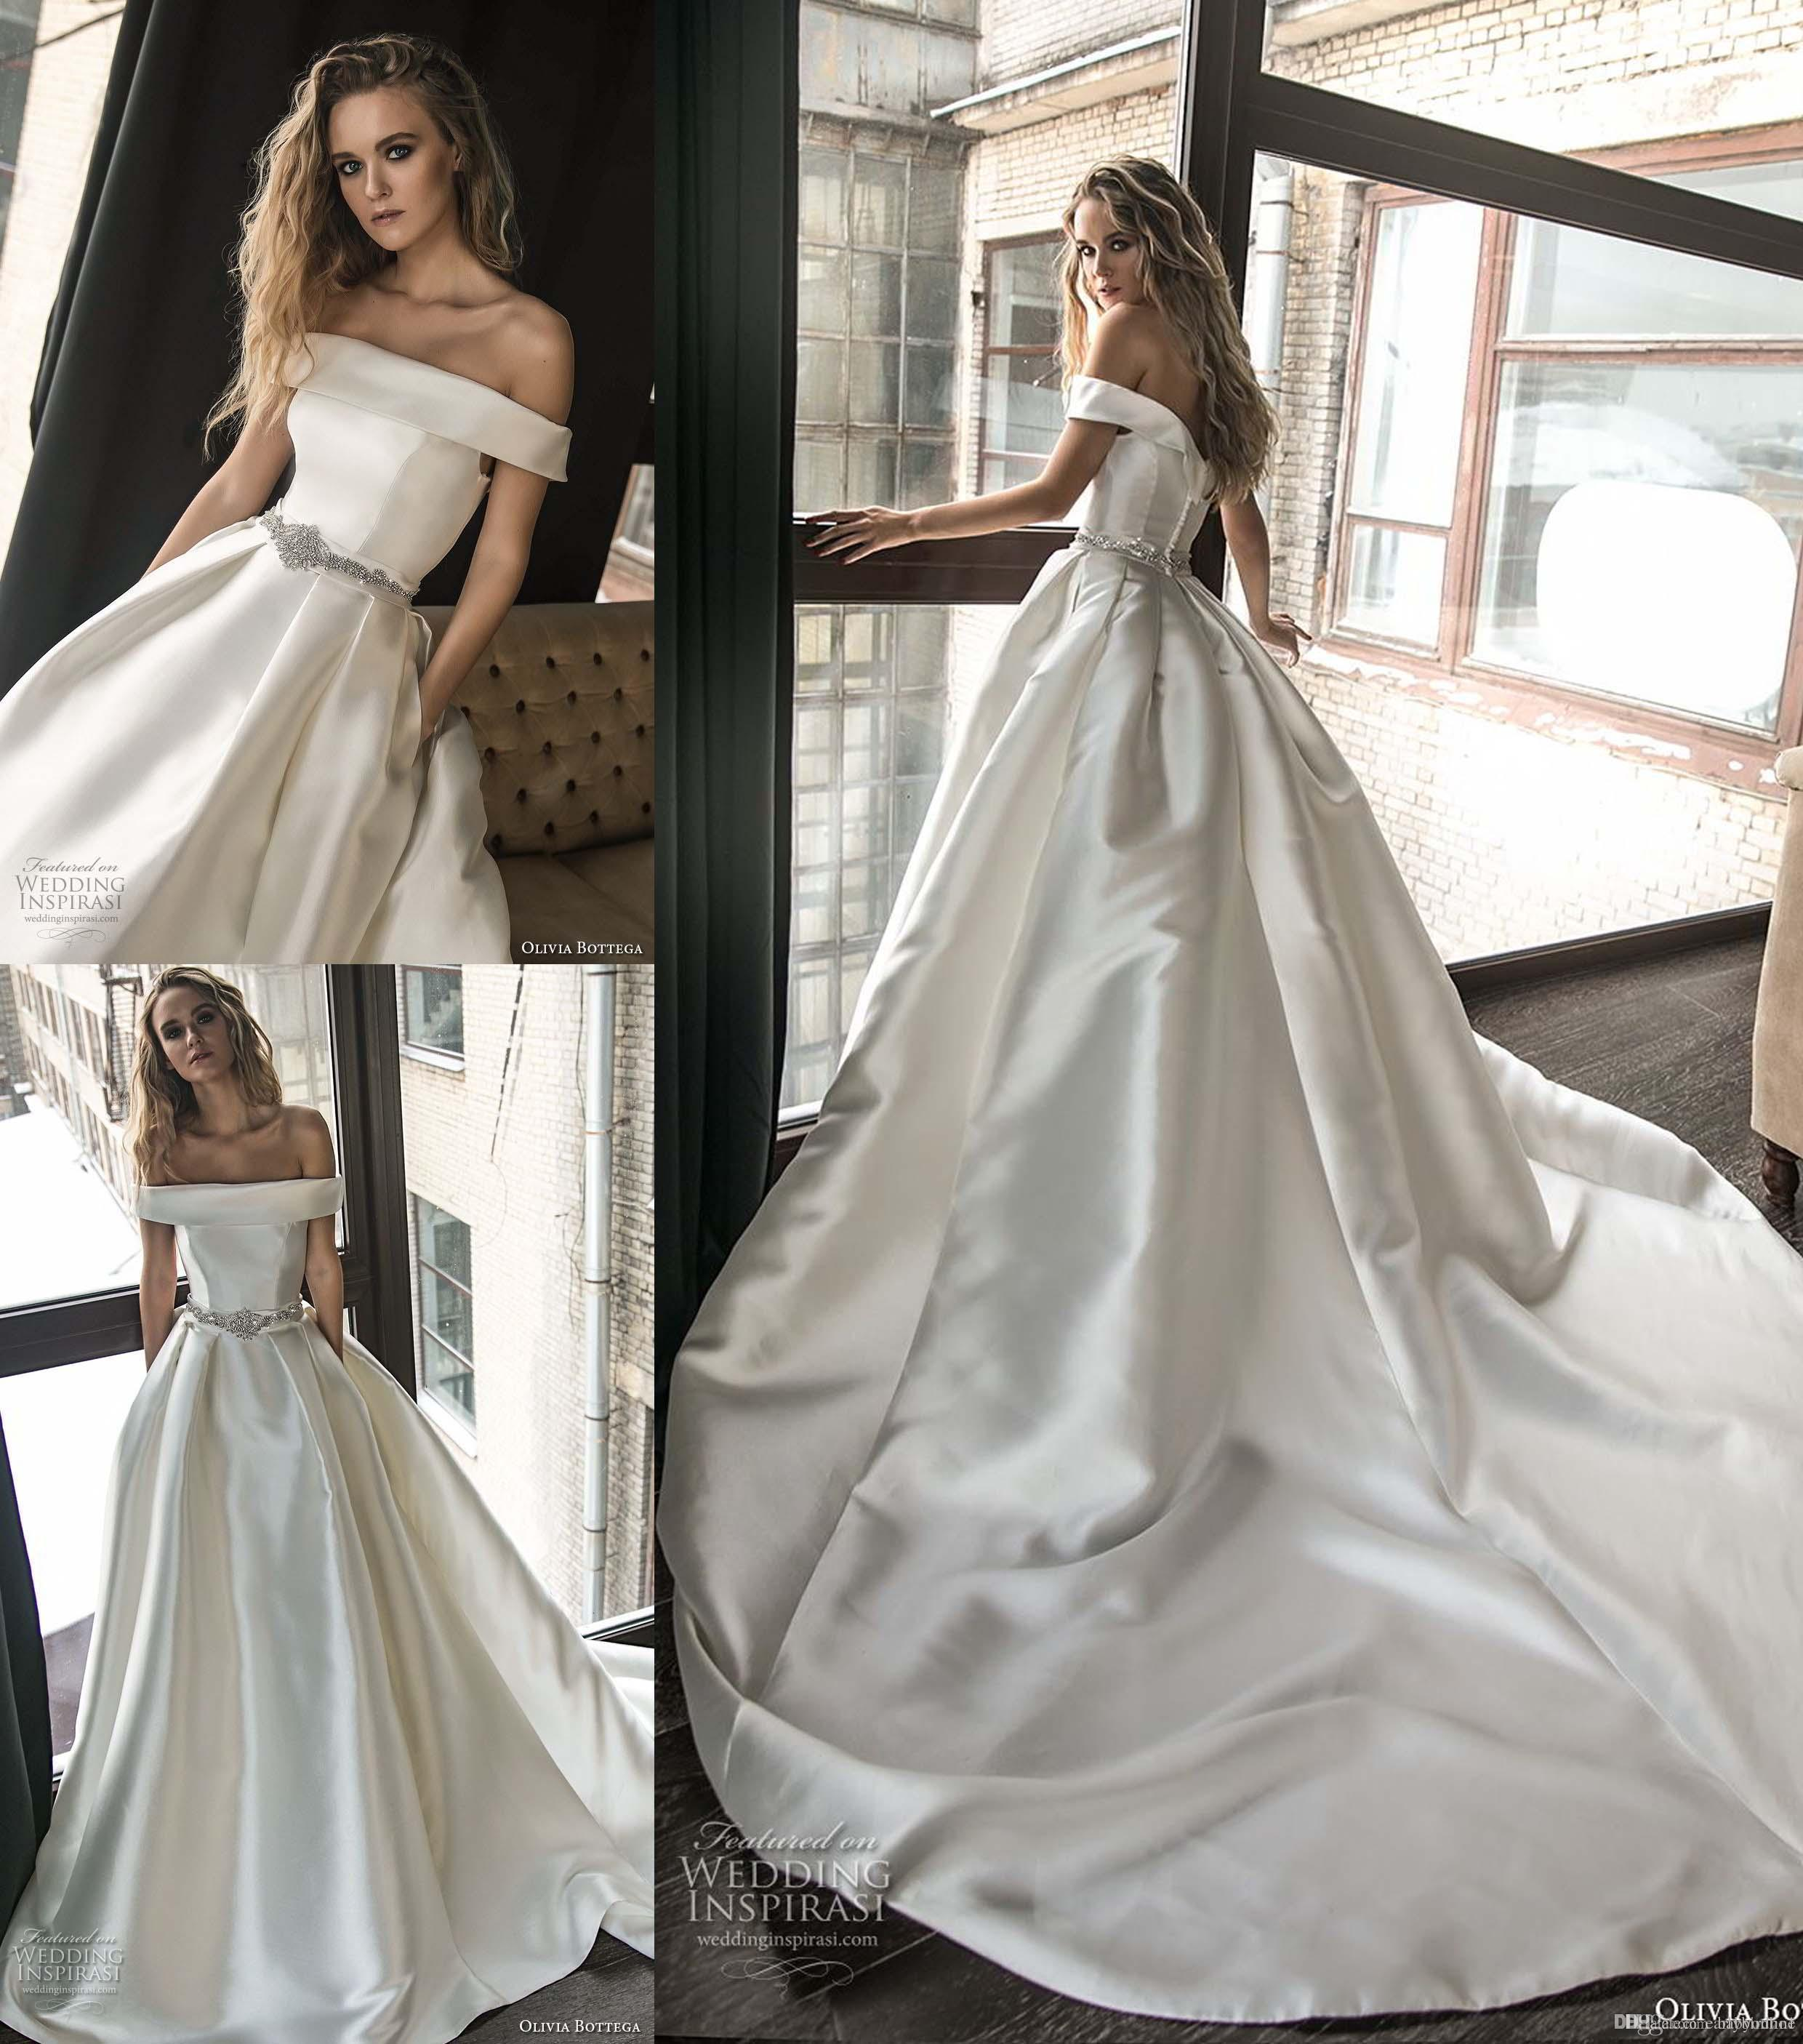 37bb4add5846 Discount Modern Satin Backless Wedding Dresses Sexy Off Shoulder A Line  Beaded Sash Chapel Train Bridal Gowns With Pockets Tea Length A Line Wedding  Dress ...